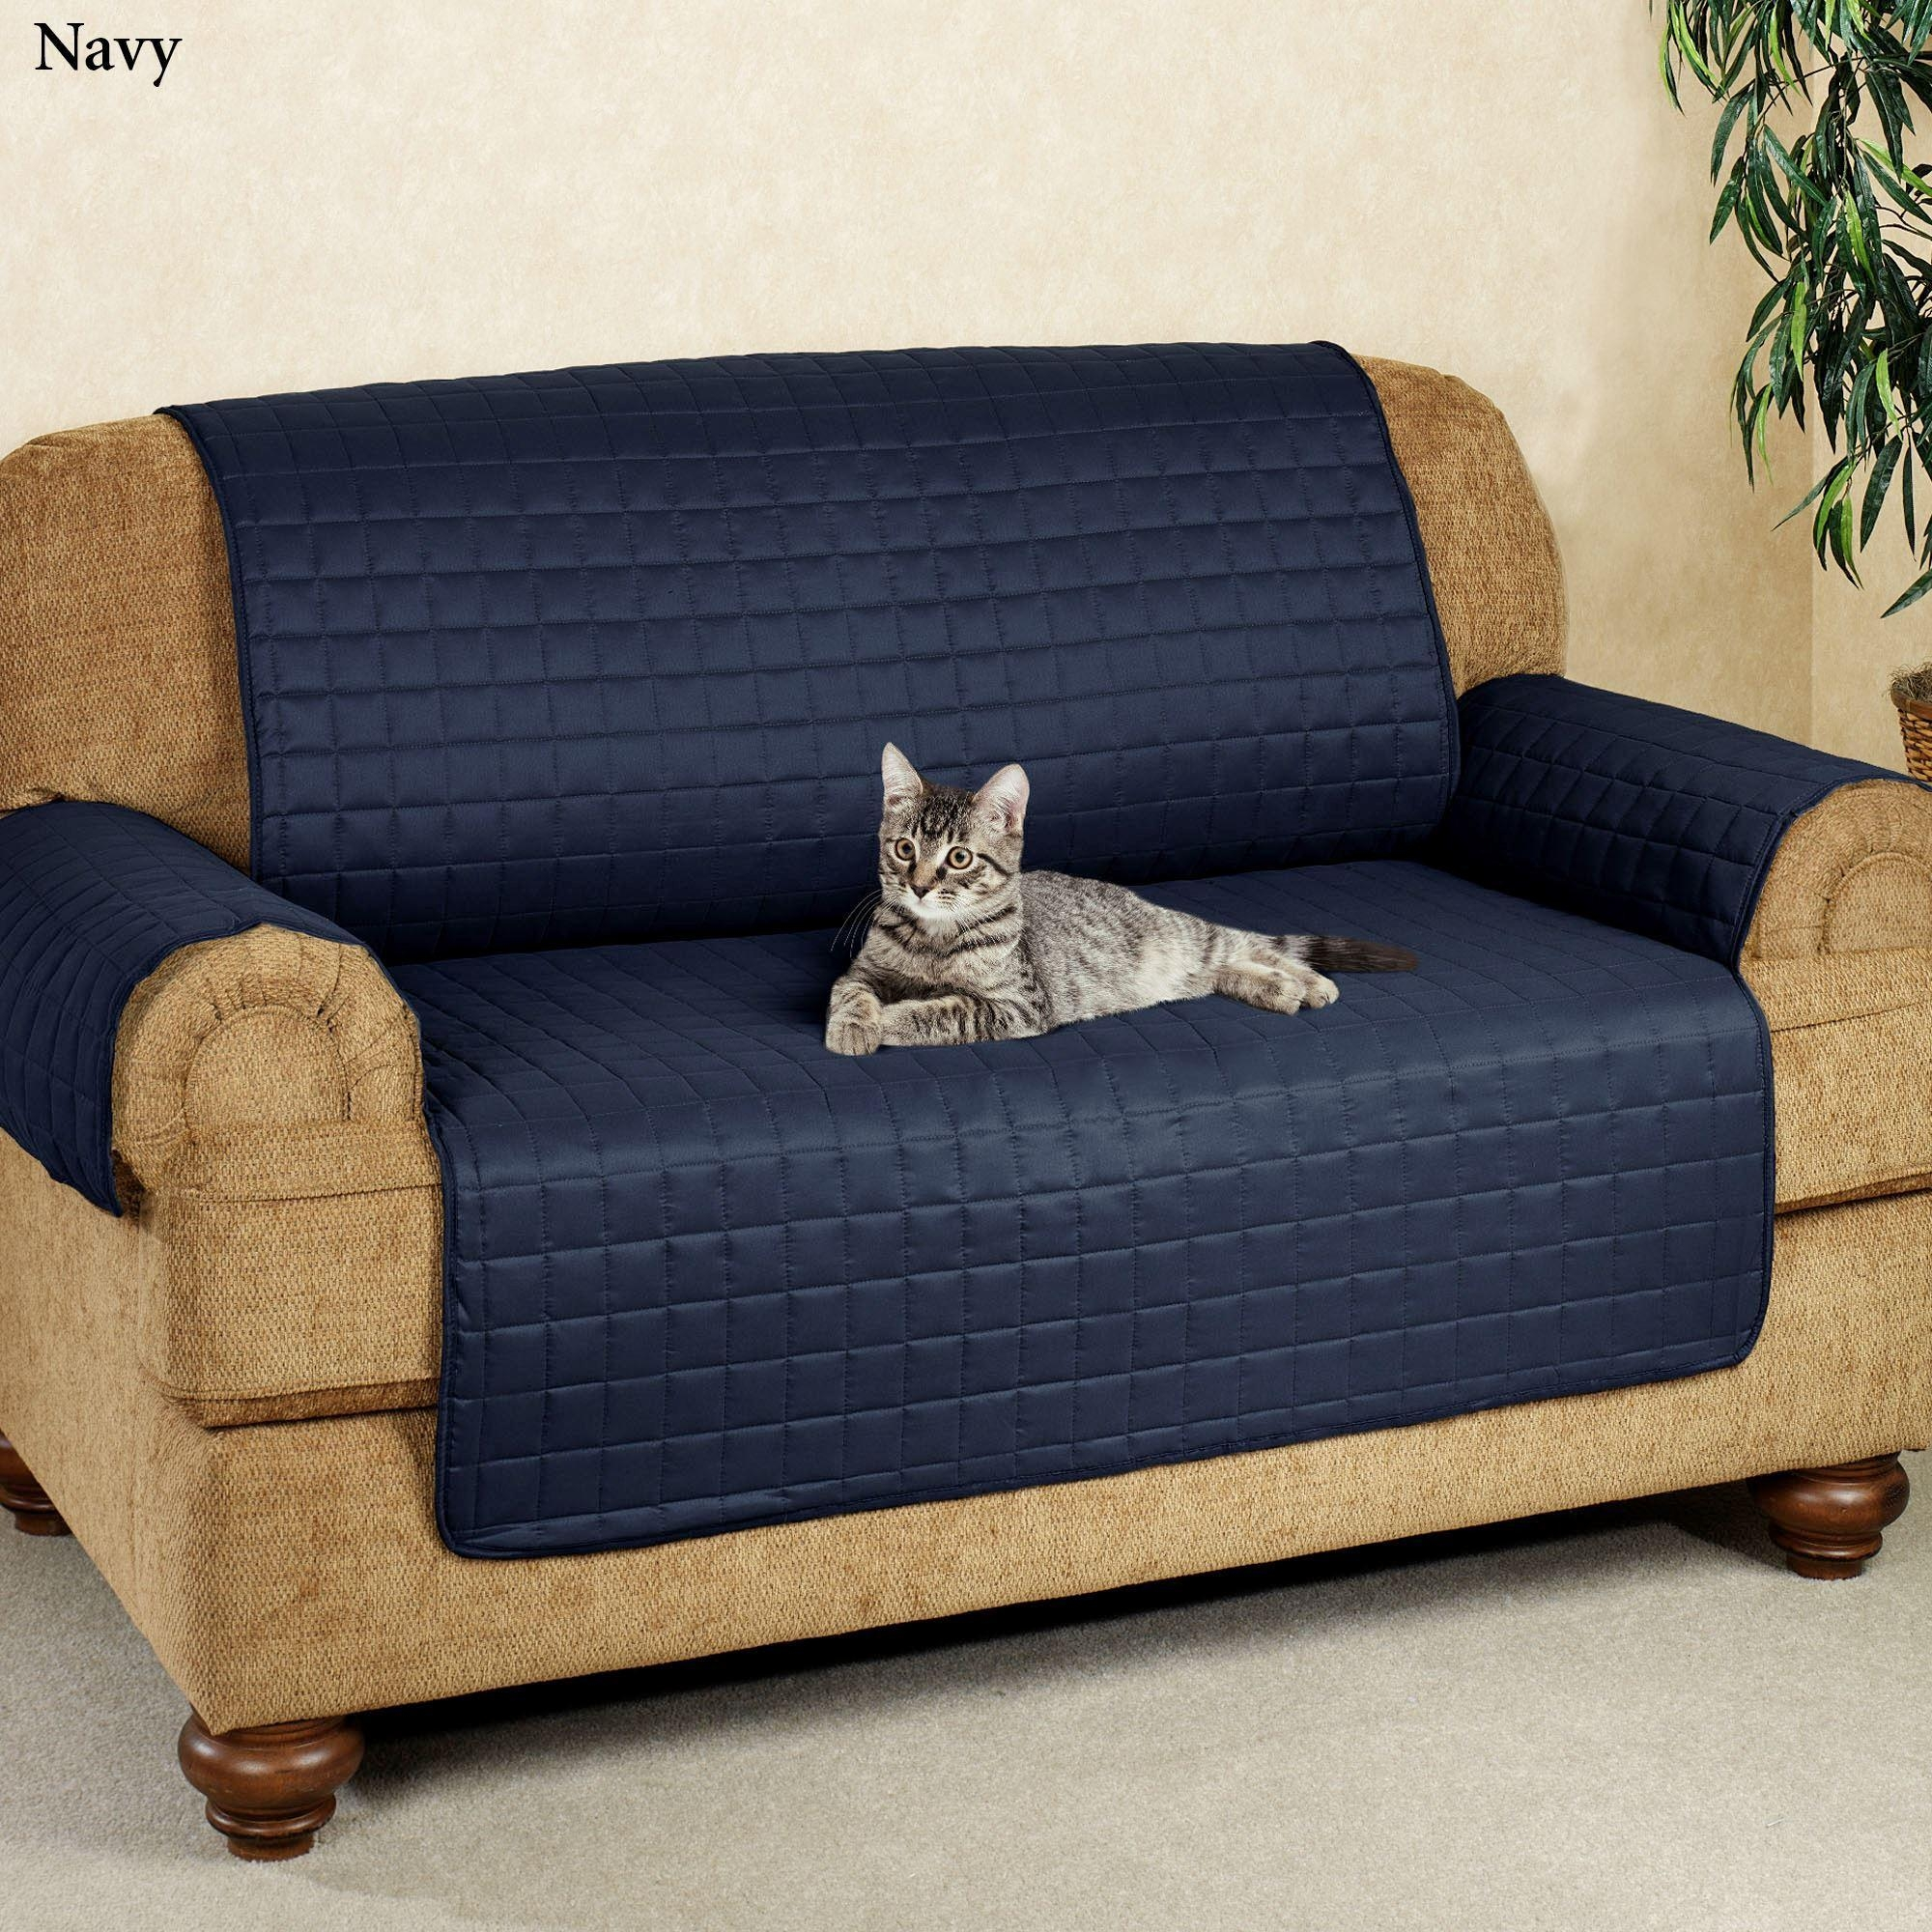 Microfiber Pet Furniture Covers With Tuck In Flaps Intended For Blue Microfiber Sofas (View 15 of 20)